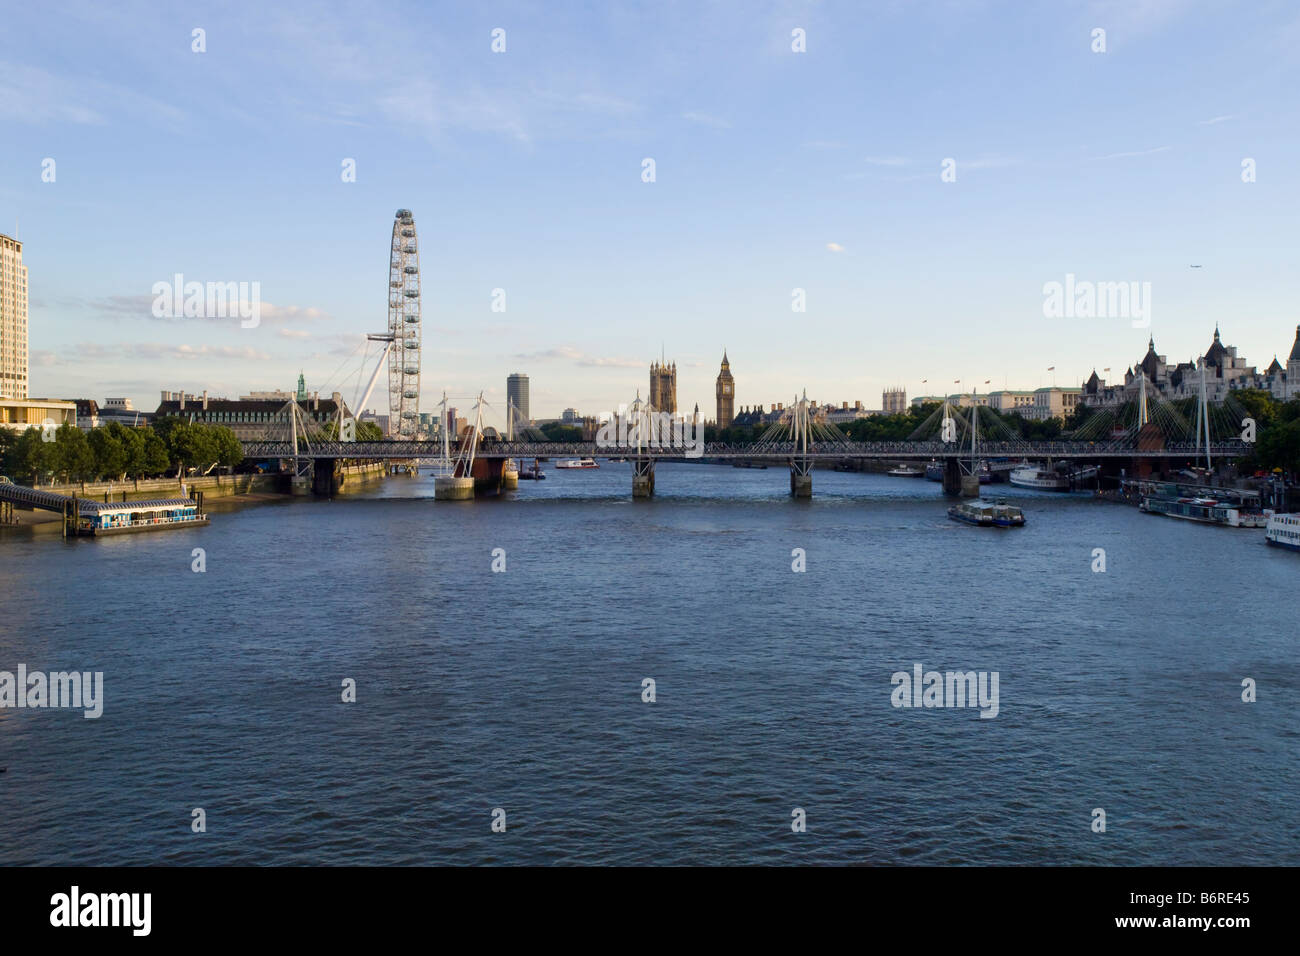 View of River Thames from Waterloo Bridge showing the Humber Bridge London Eye and Big Ben Stock Photo